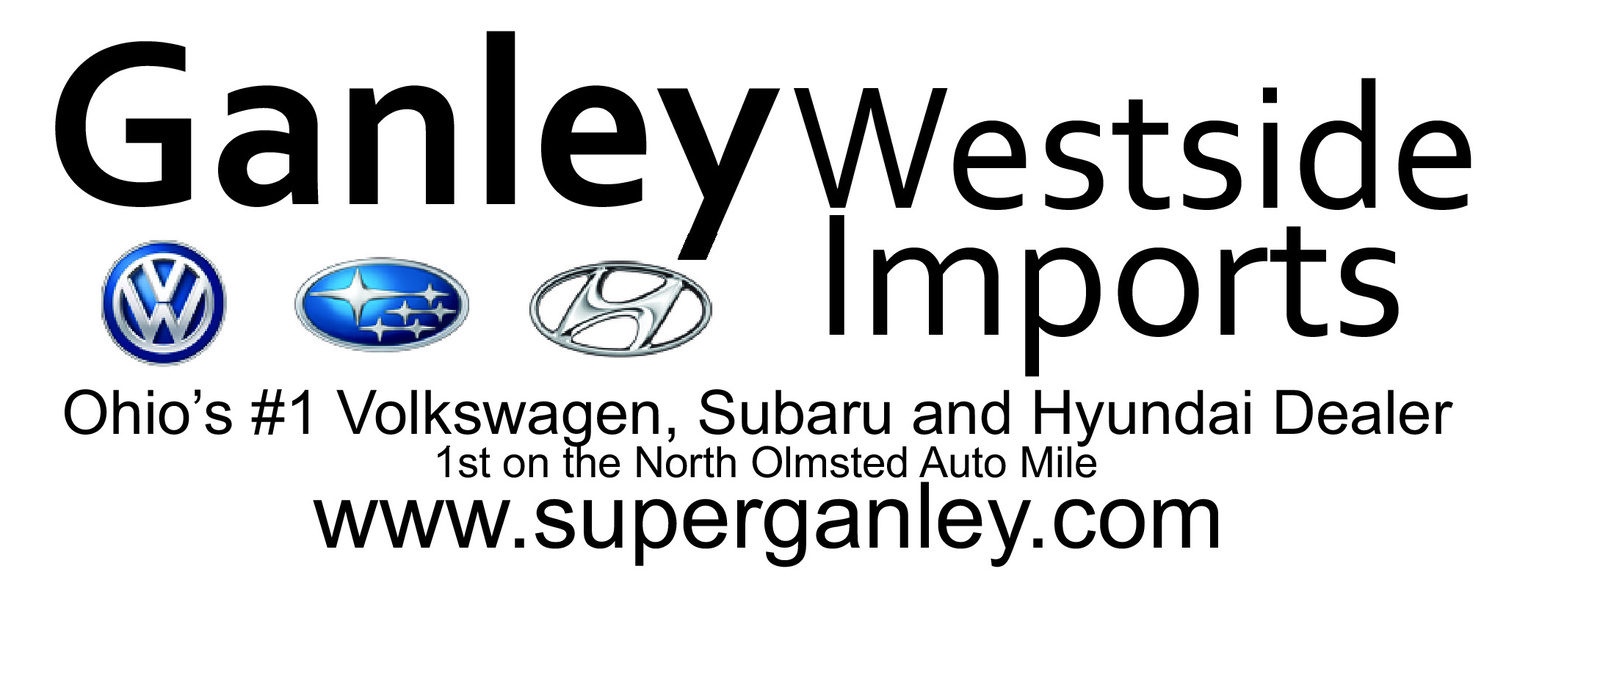 Ganley westside hyundai north olmsted oh read consumer for Ganley mercedes benz